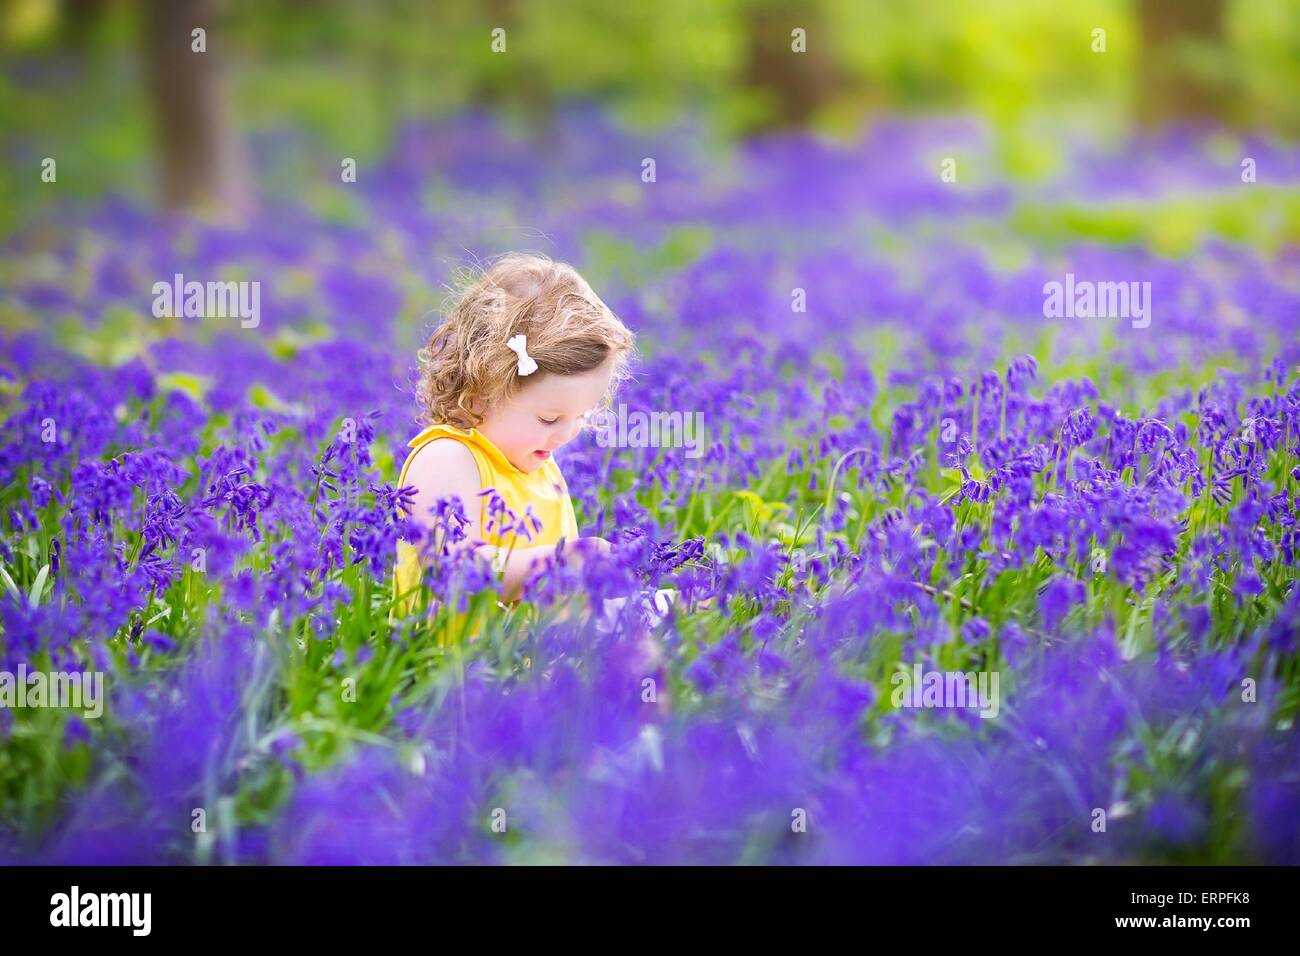 Adorable toddler girl with curly hair wearing a yellow dress playing adorable toddler girl with curly hair wearing a yellow dress playing with purple bluebell flowers in a sunny spring forest mightylinksfo